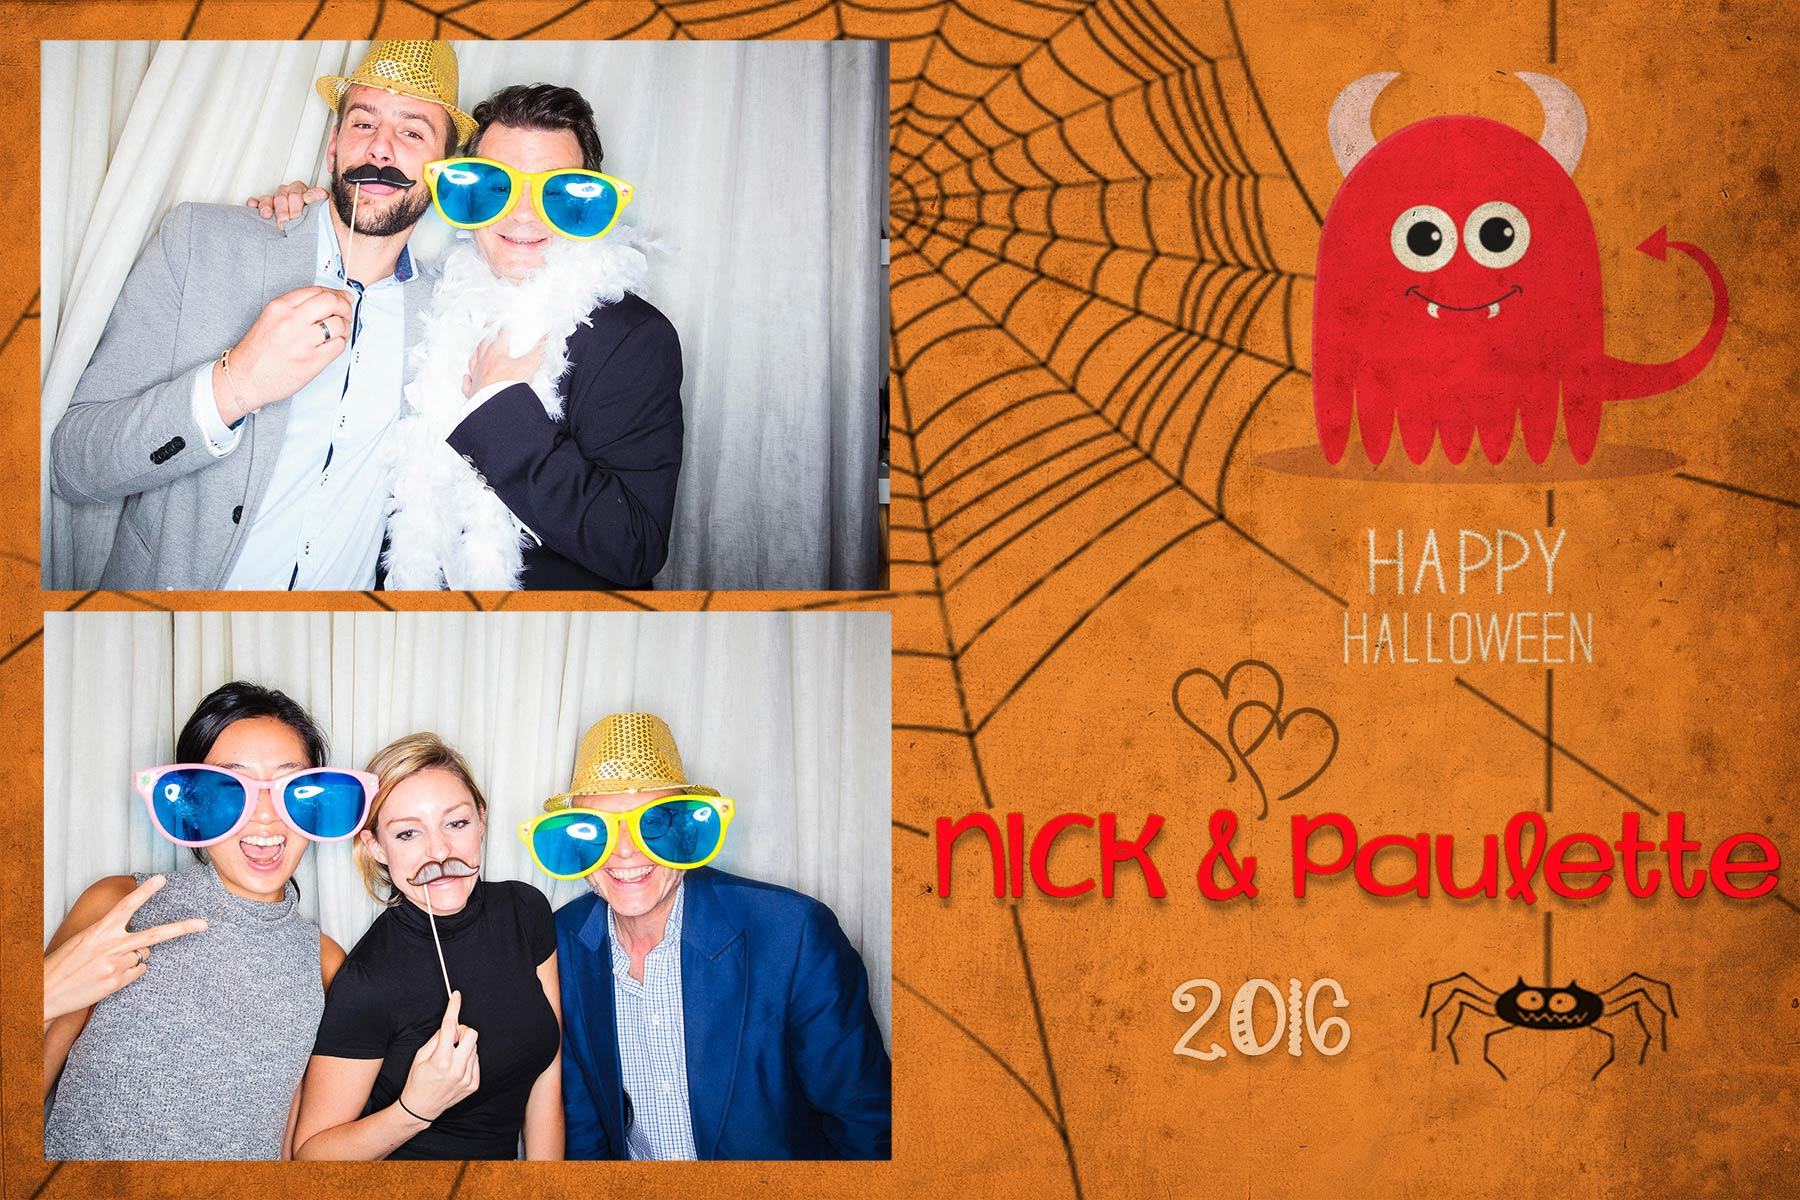 C-Nick-&-Paulette-Hallowen-2016-2POSES-Post-card-4x6-INSTABOX-2016-ARDIAN